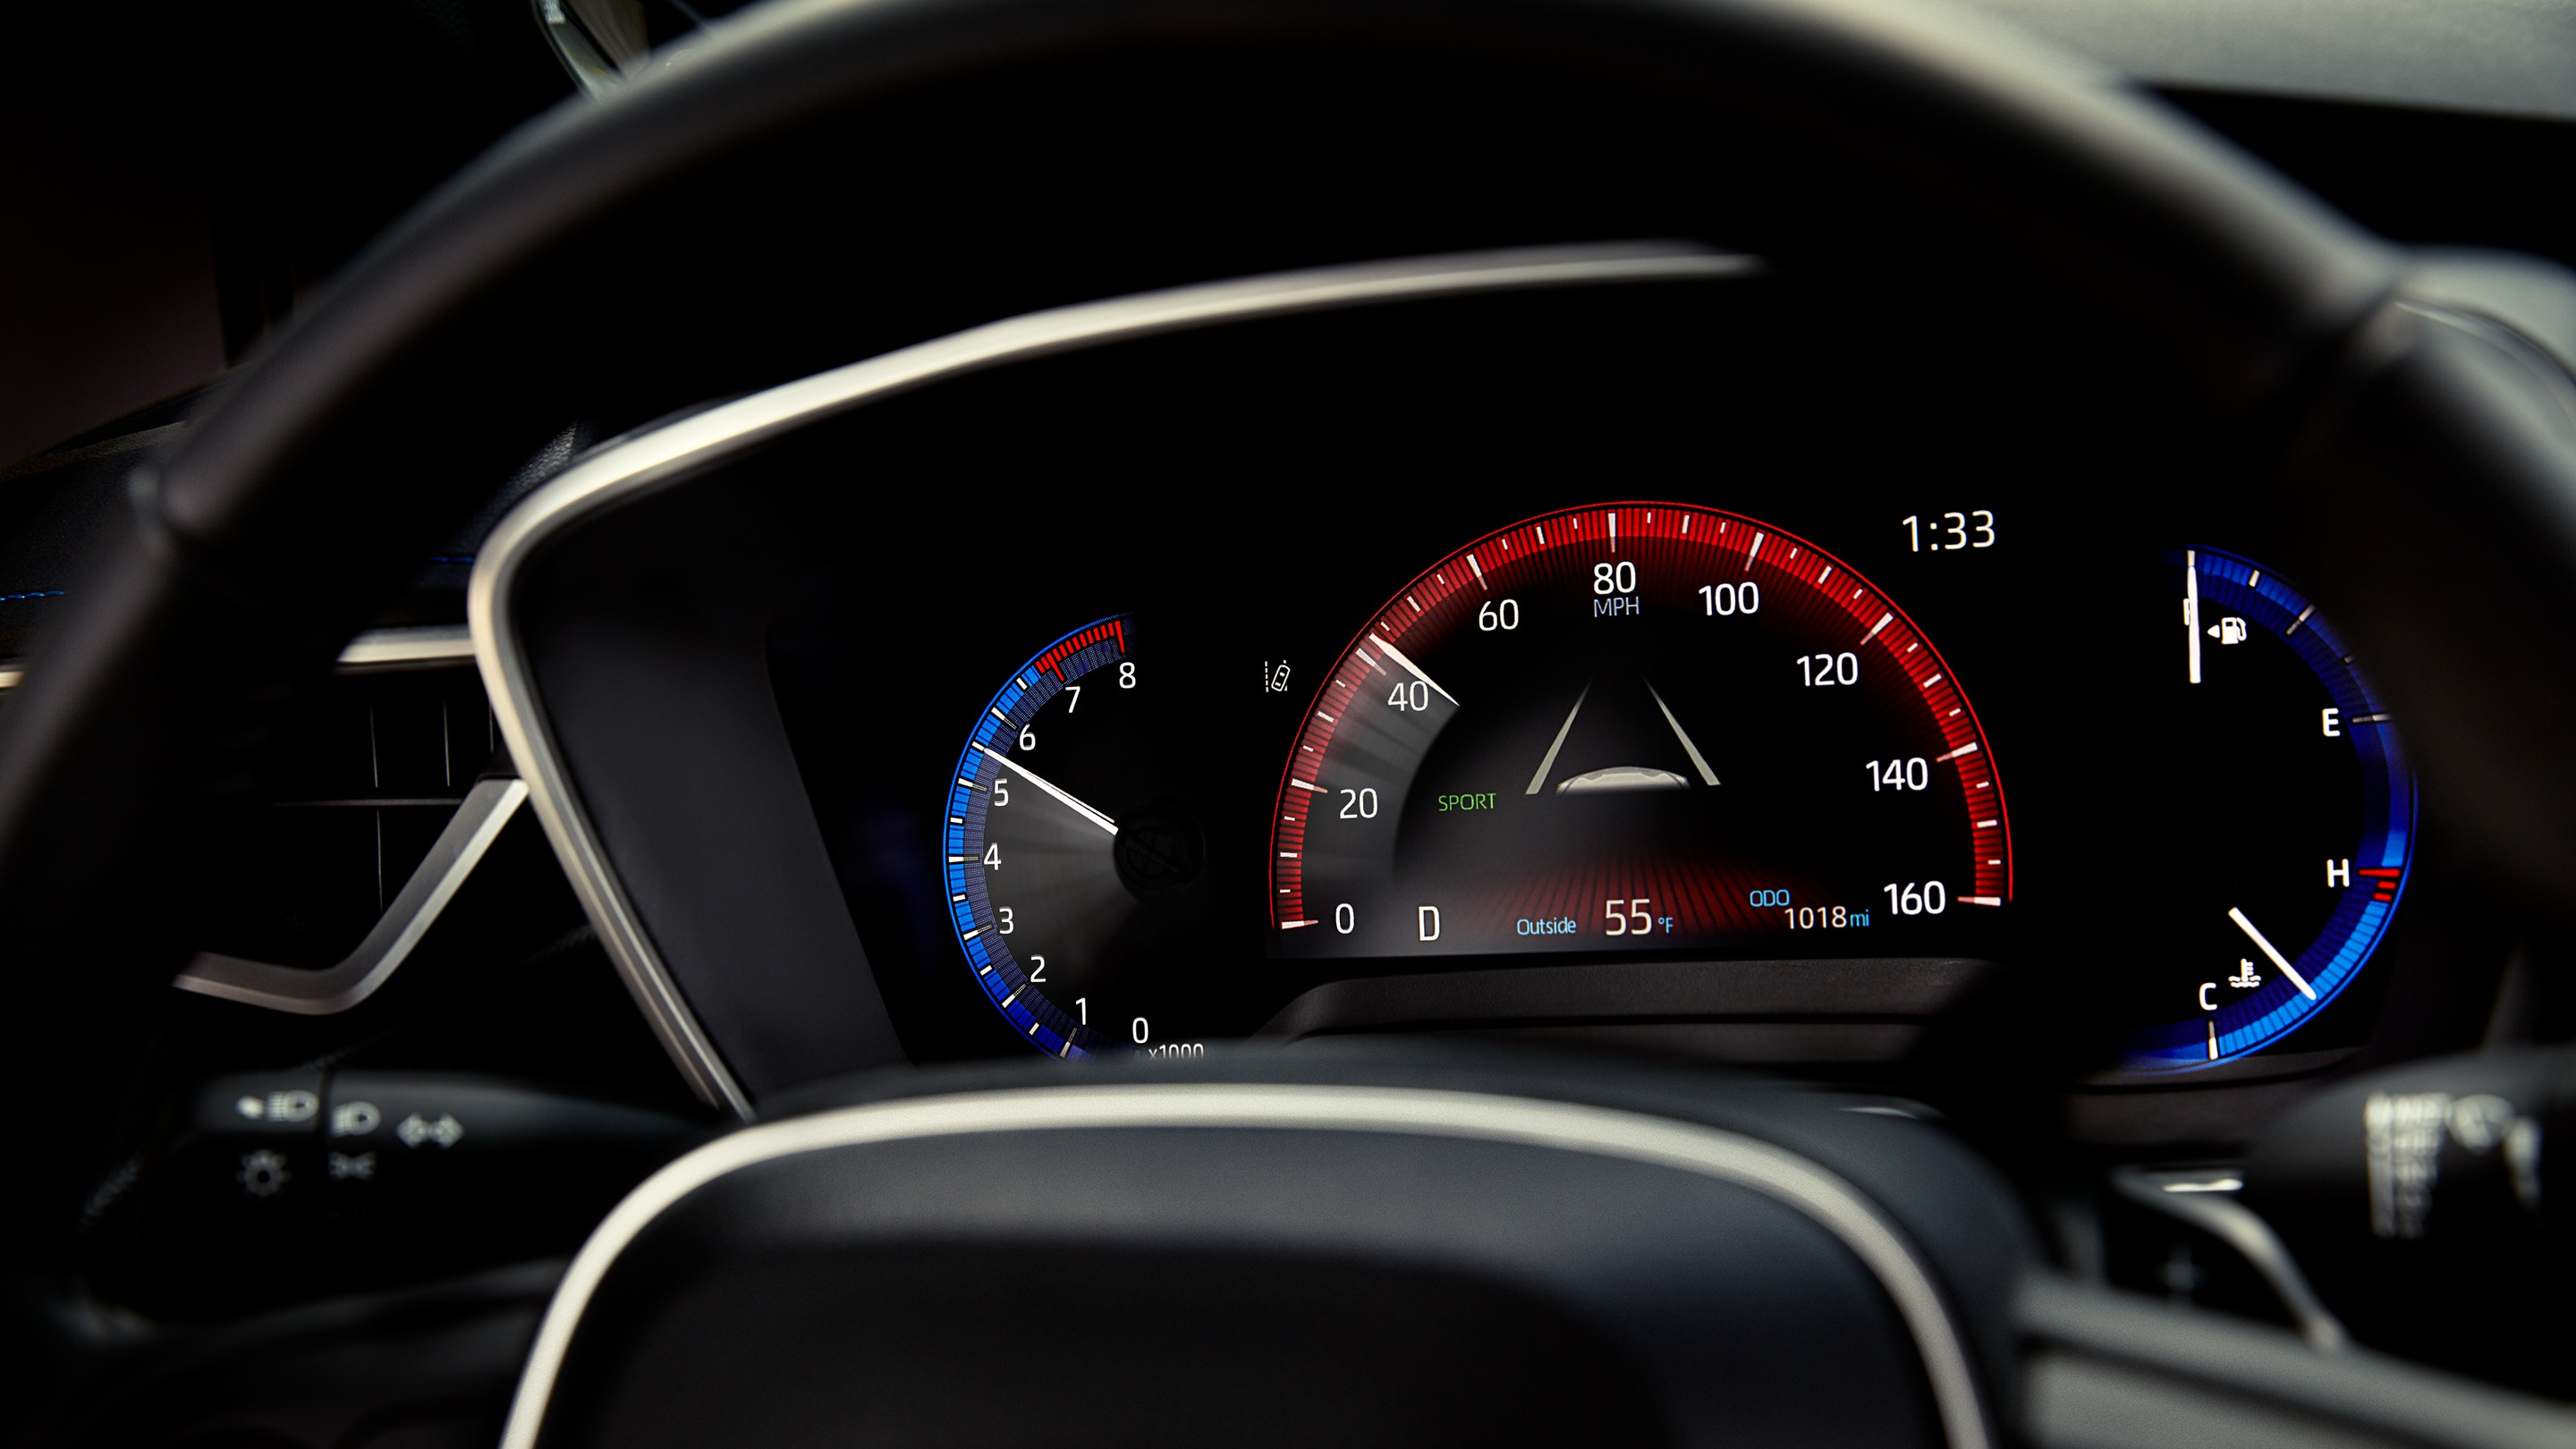 2020 Corolla Instrument Cluster